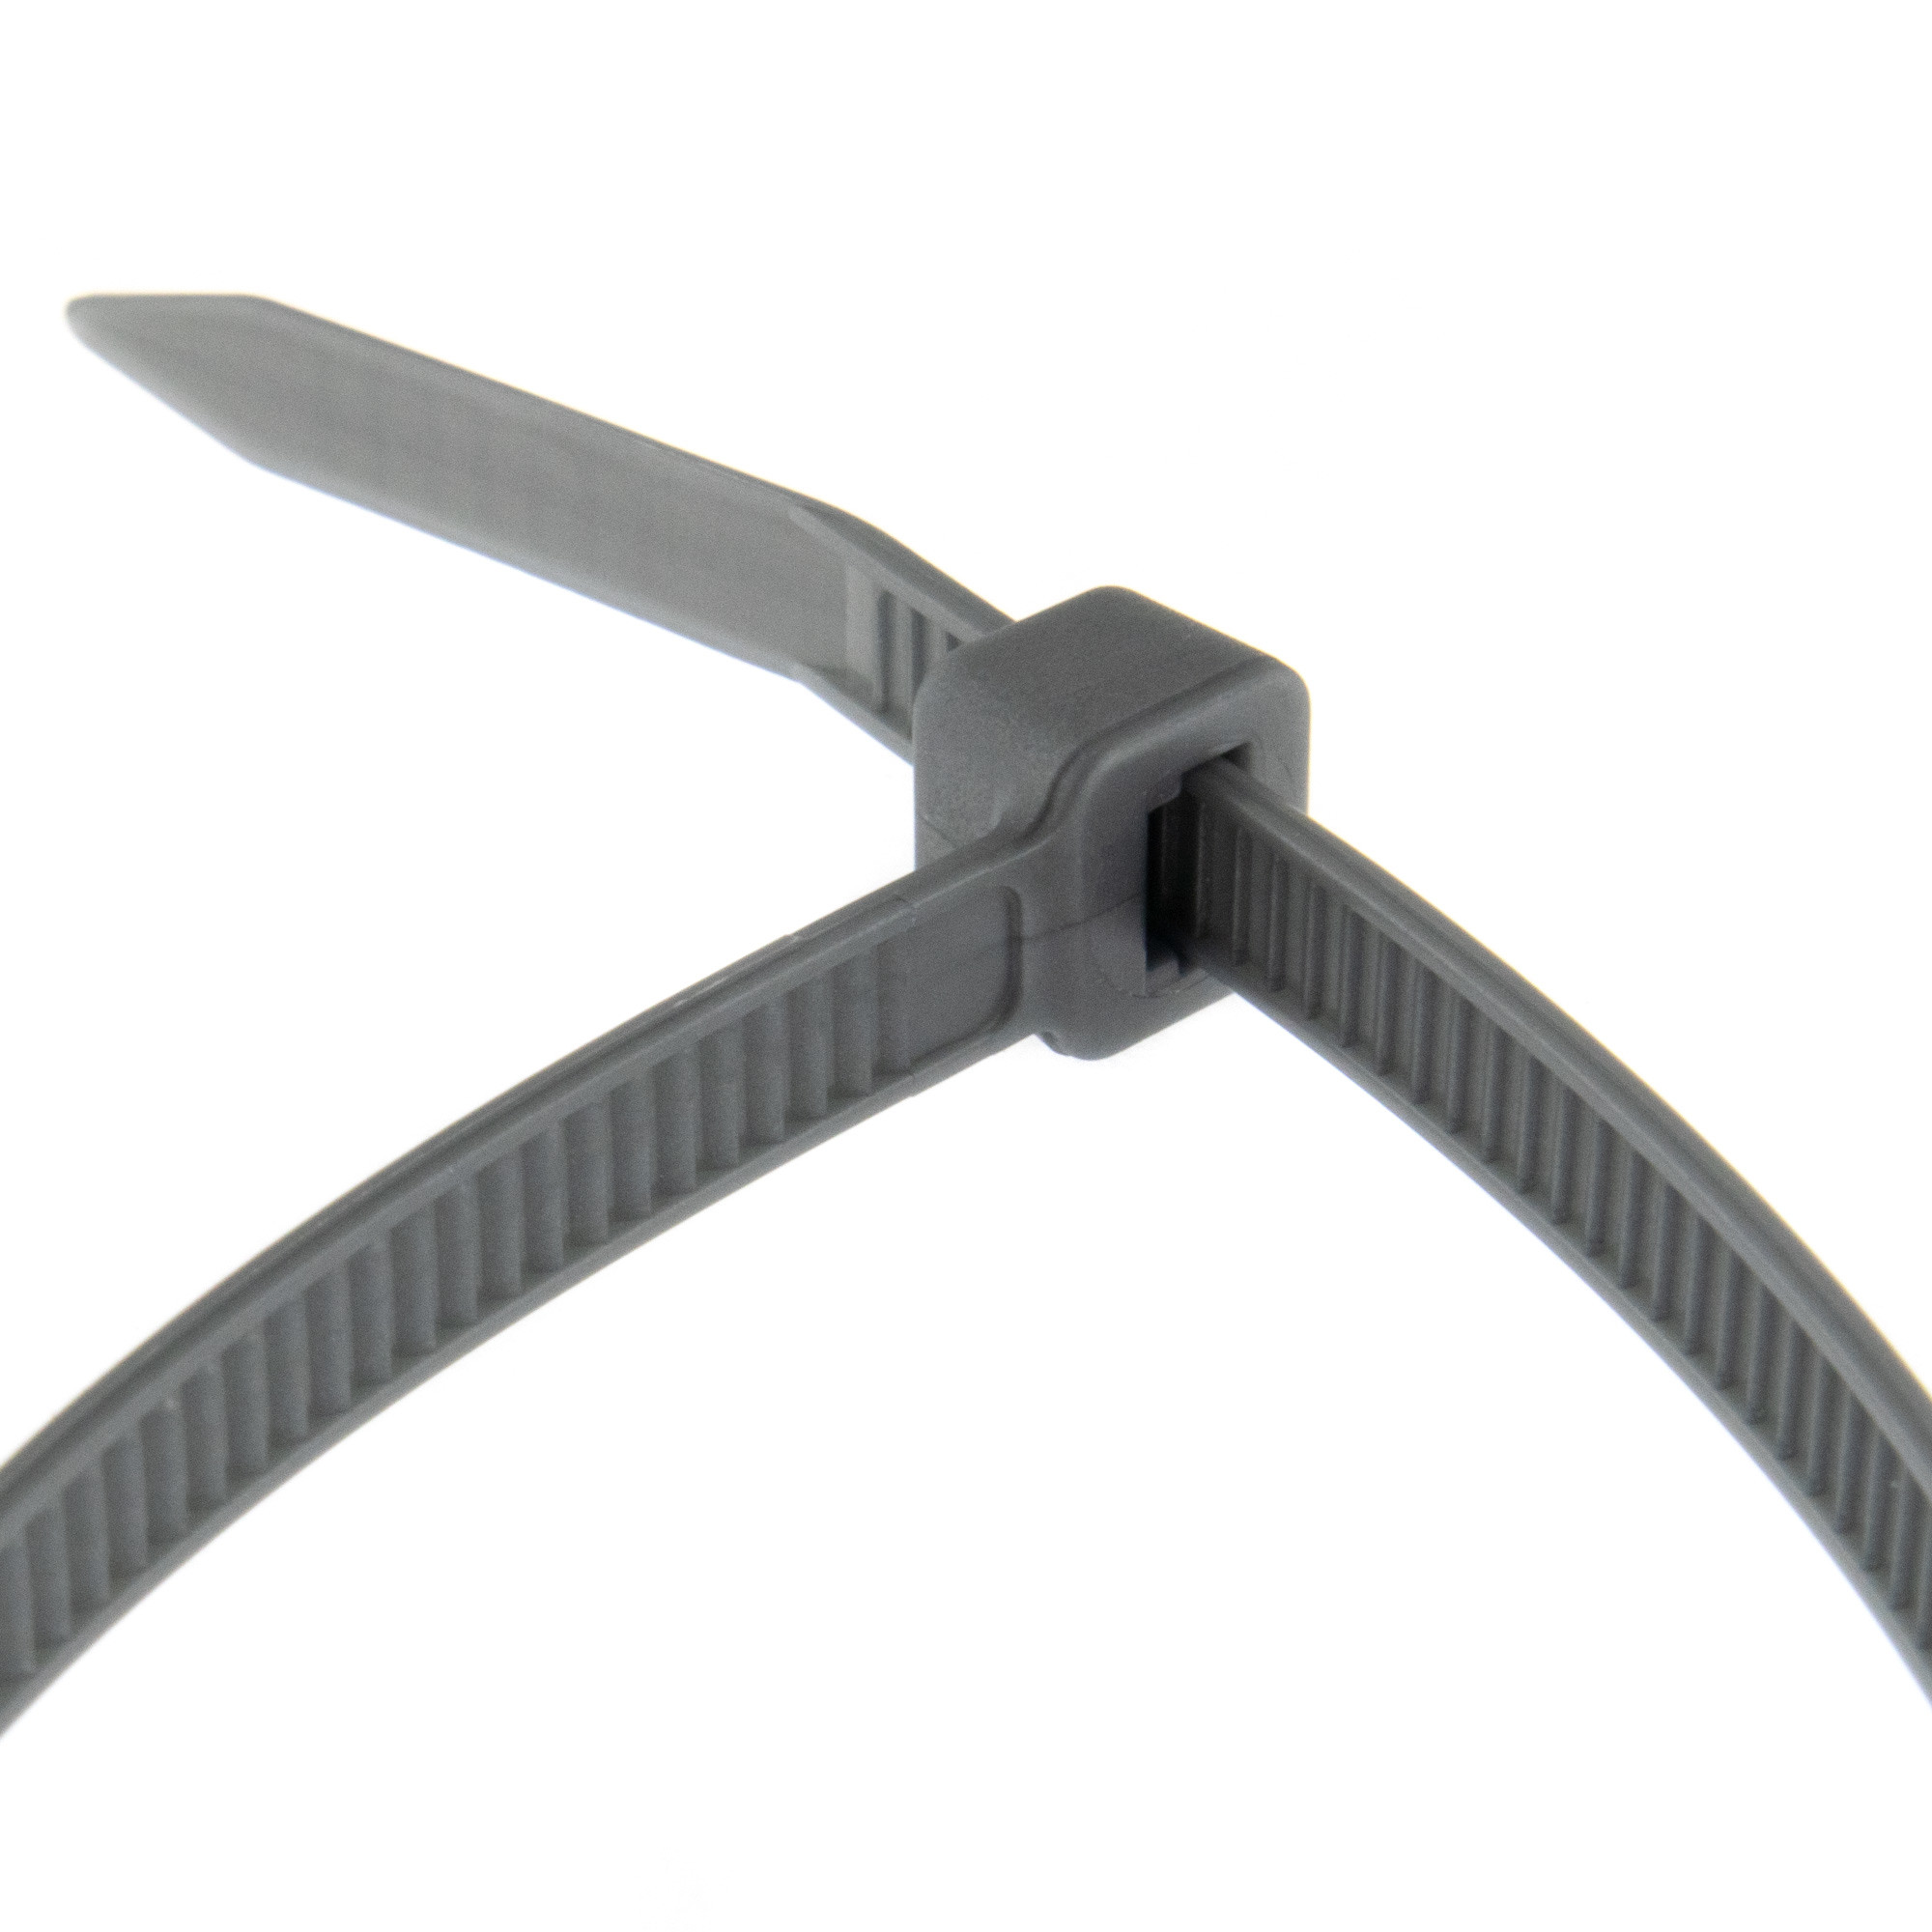 Cable tie self-locking 200 x 4,8mm, silver, 100PCS